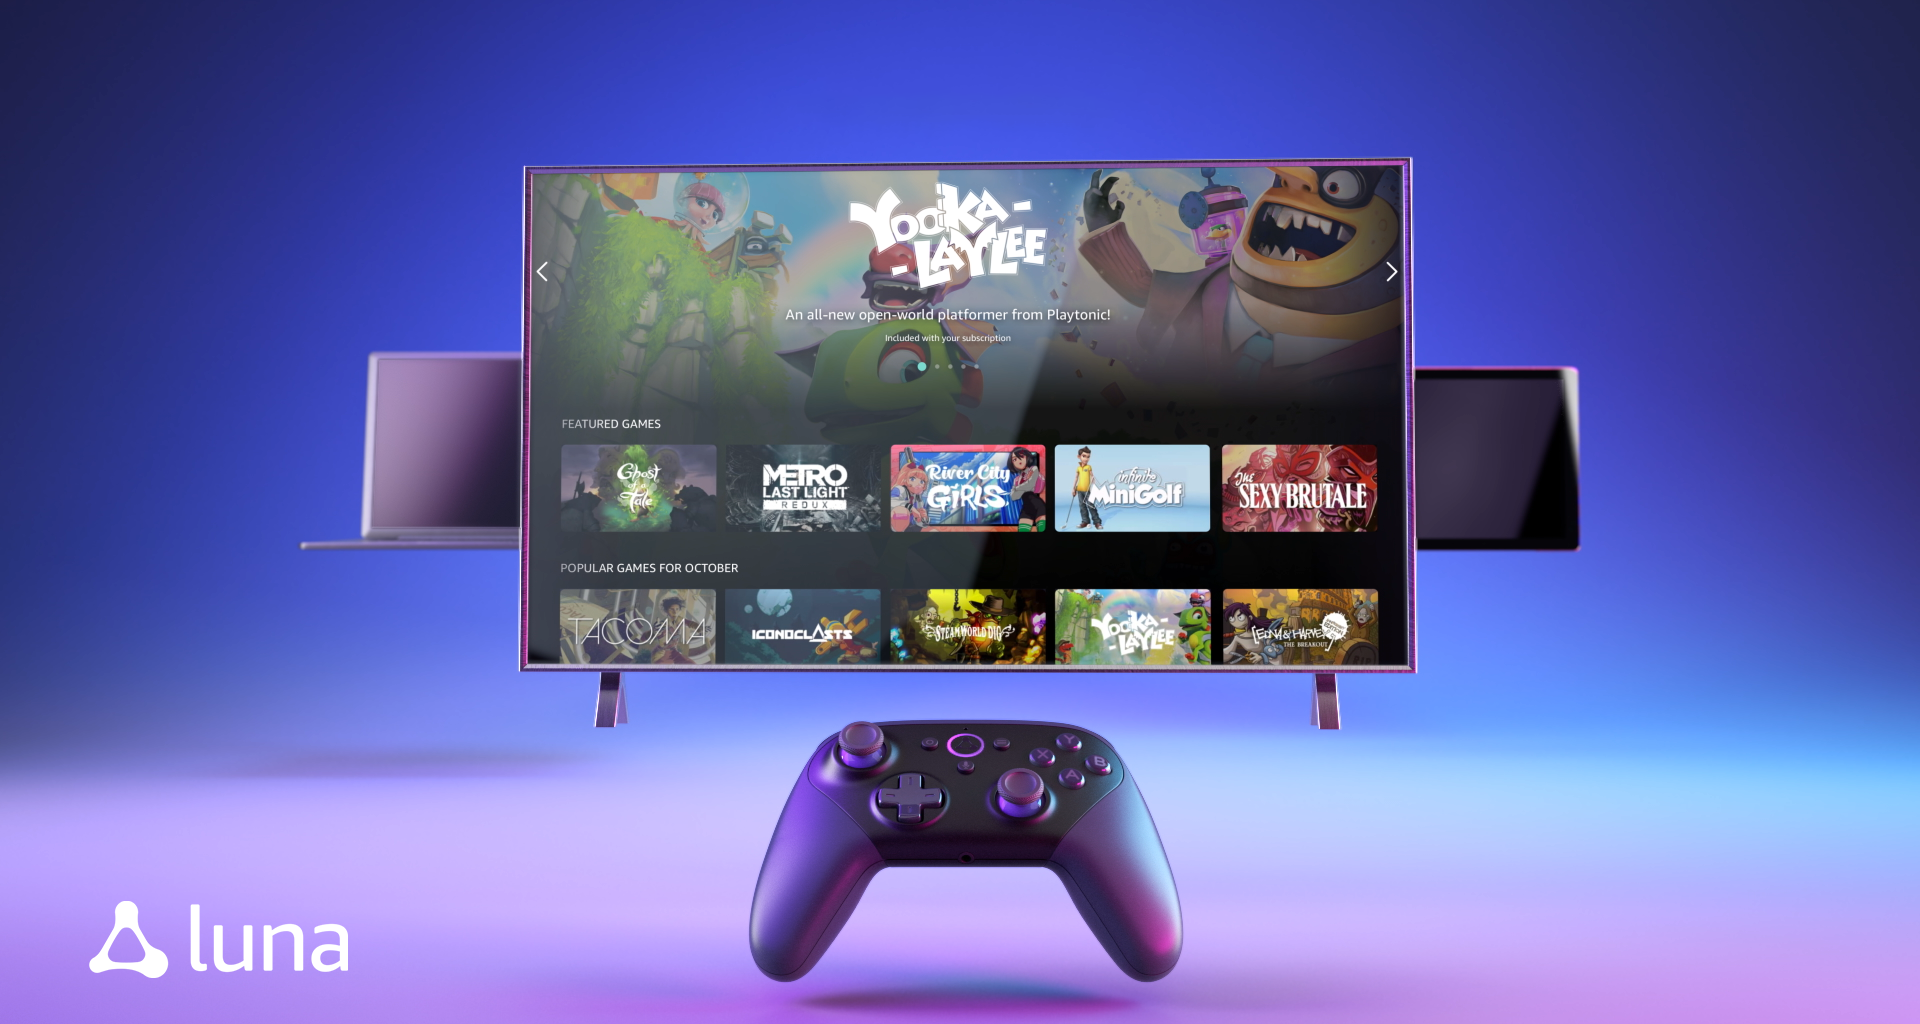 Amazon announced Luna, its Cloud Gaming Service